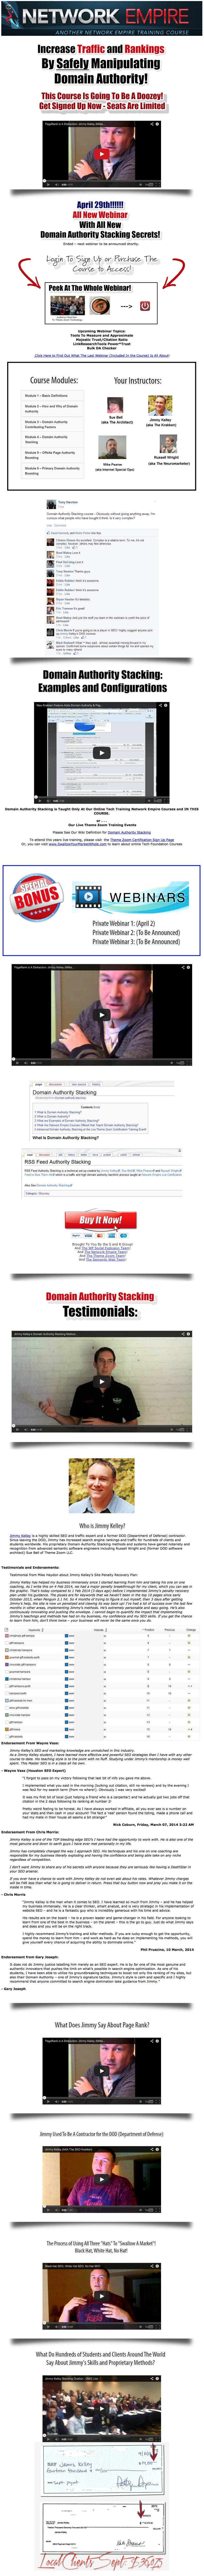 Domain Authority Stacking By JIMMY KELLY